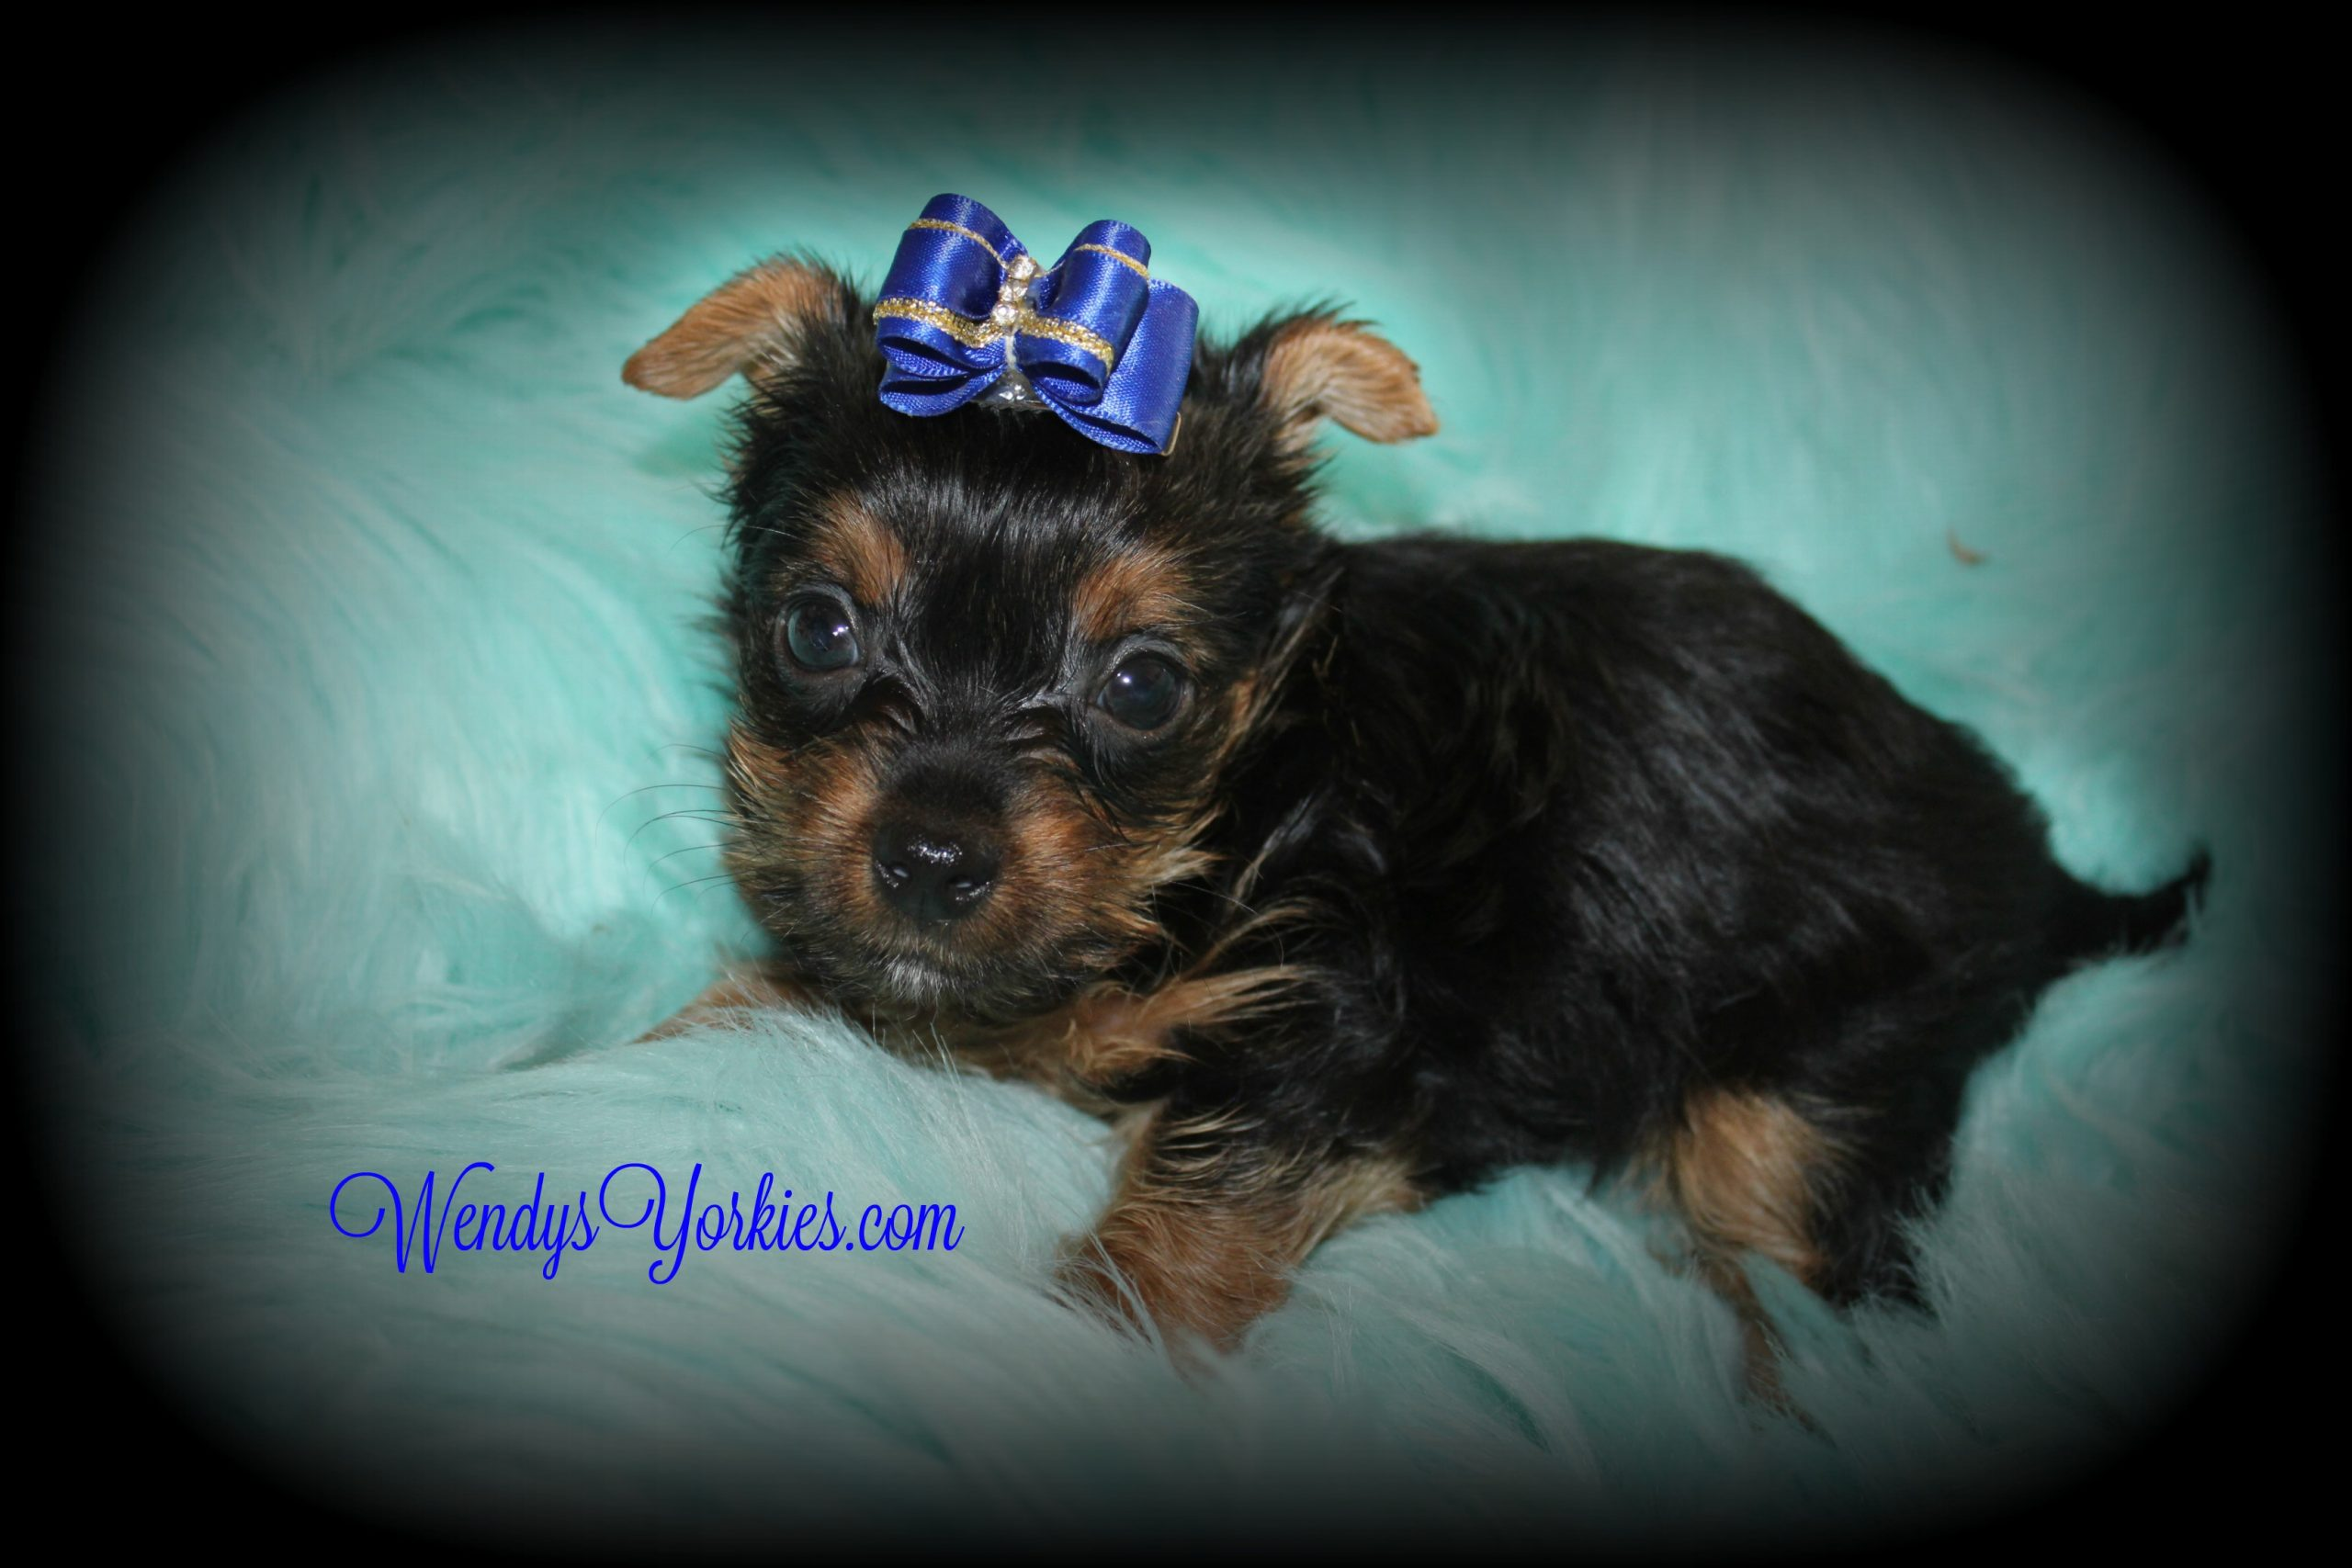 Teacup Yorkie puppy for sale in Texas, Anna m1, WendysYorkies.com